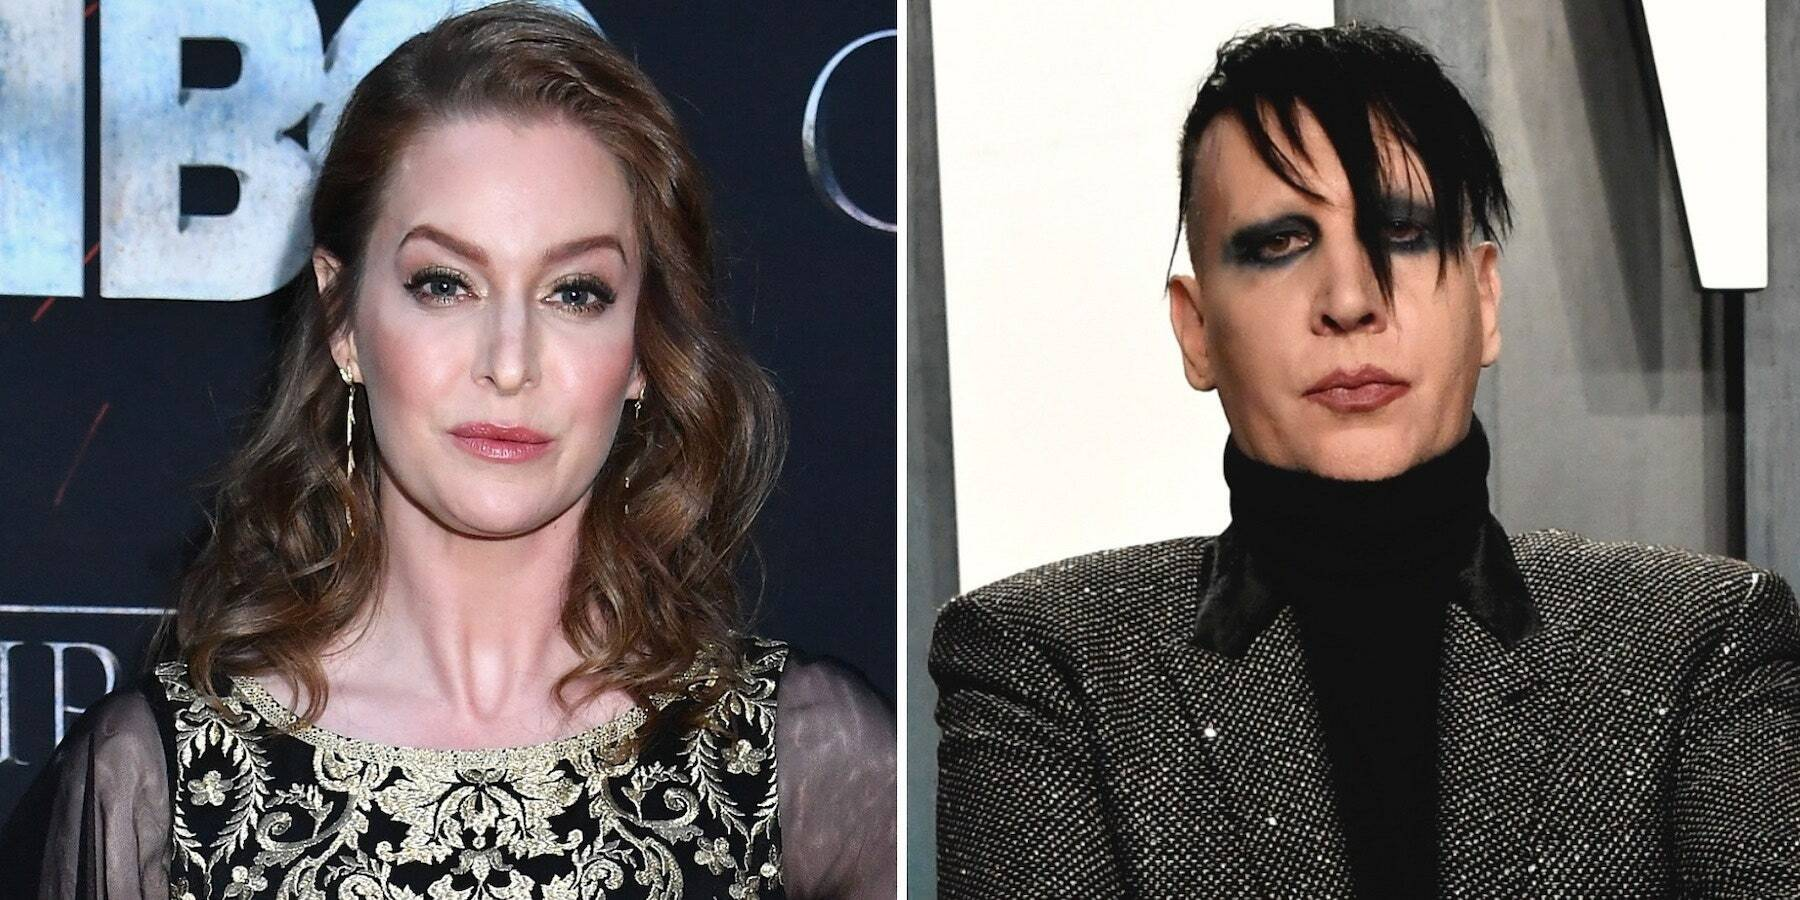 Marilyn Manson Sued by GOT Actress Esmé Bianco for Human Trafficking and 'Astonishing' Sexual Abuse